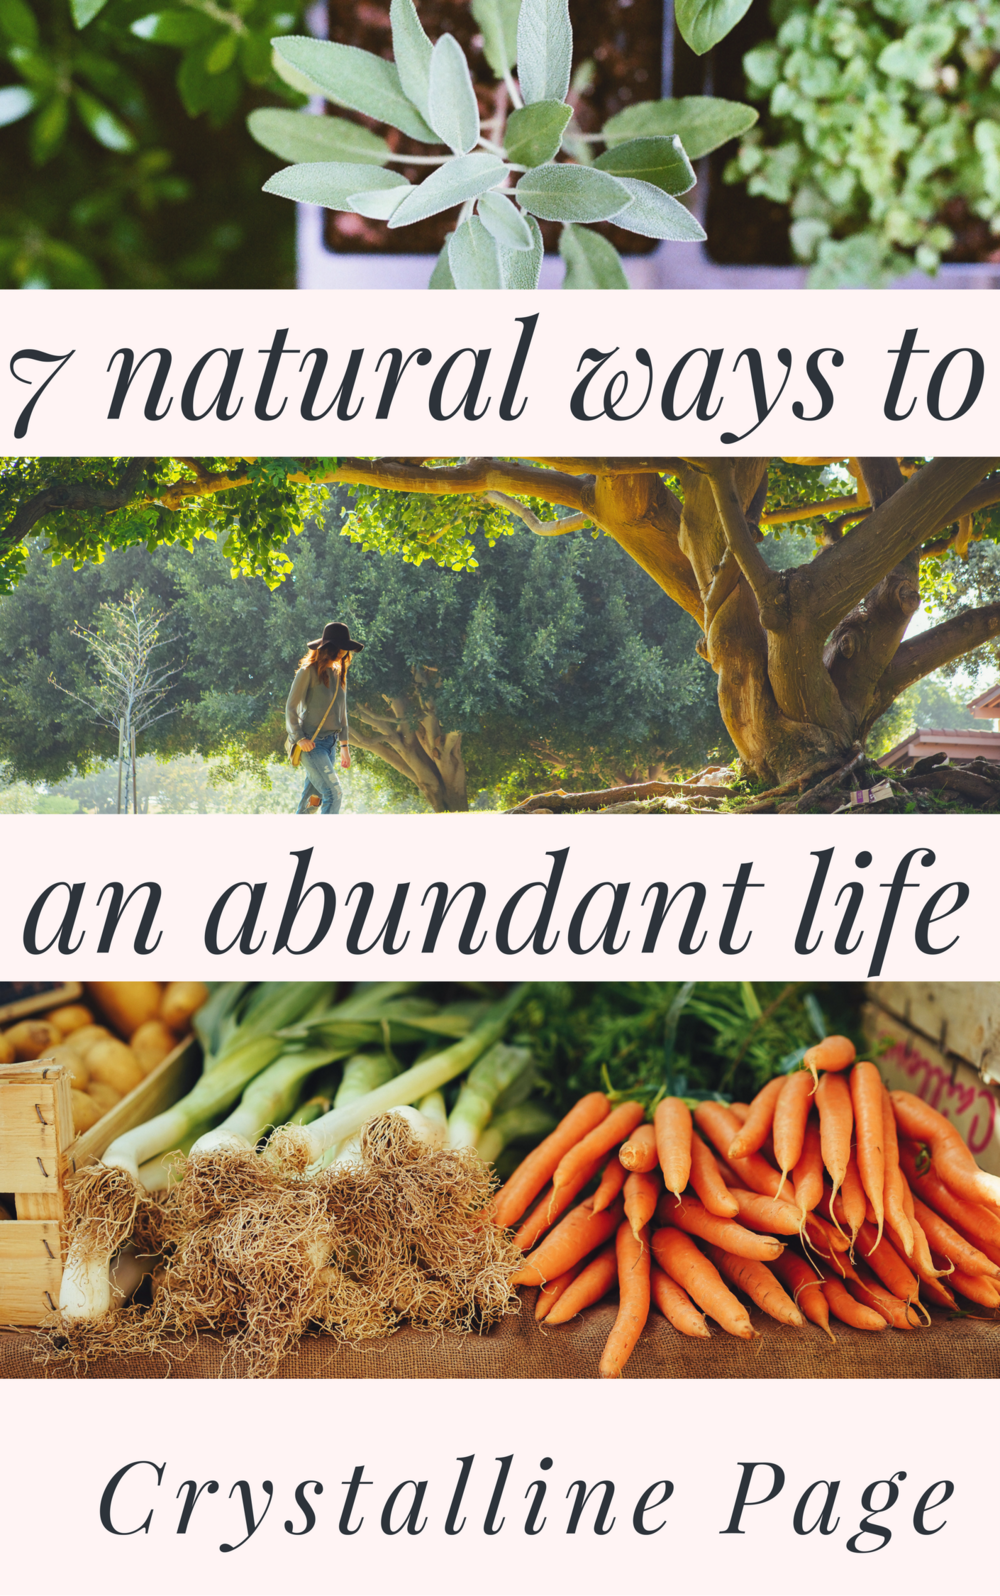 7 natural ways to an abundant life.png